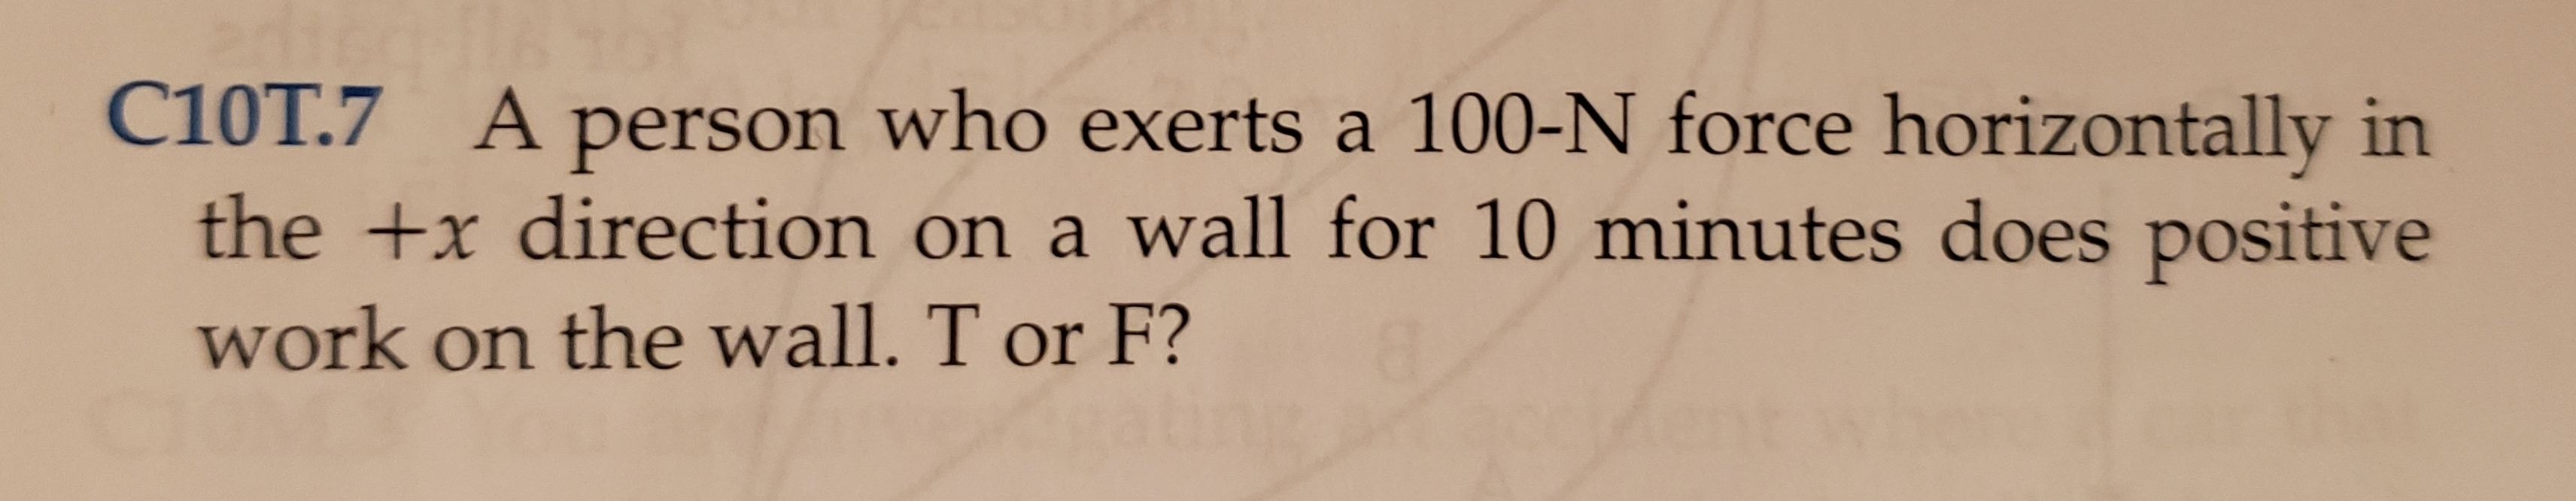 C10T.7 Aperson who exerts a 100-N force horizontally in the +x direction on a wall for 10 minutes does positive work on the wall. T or F?